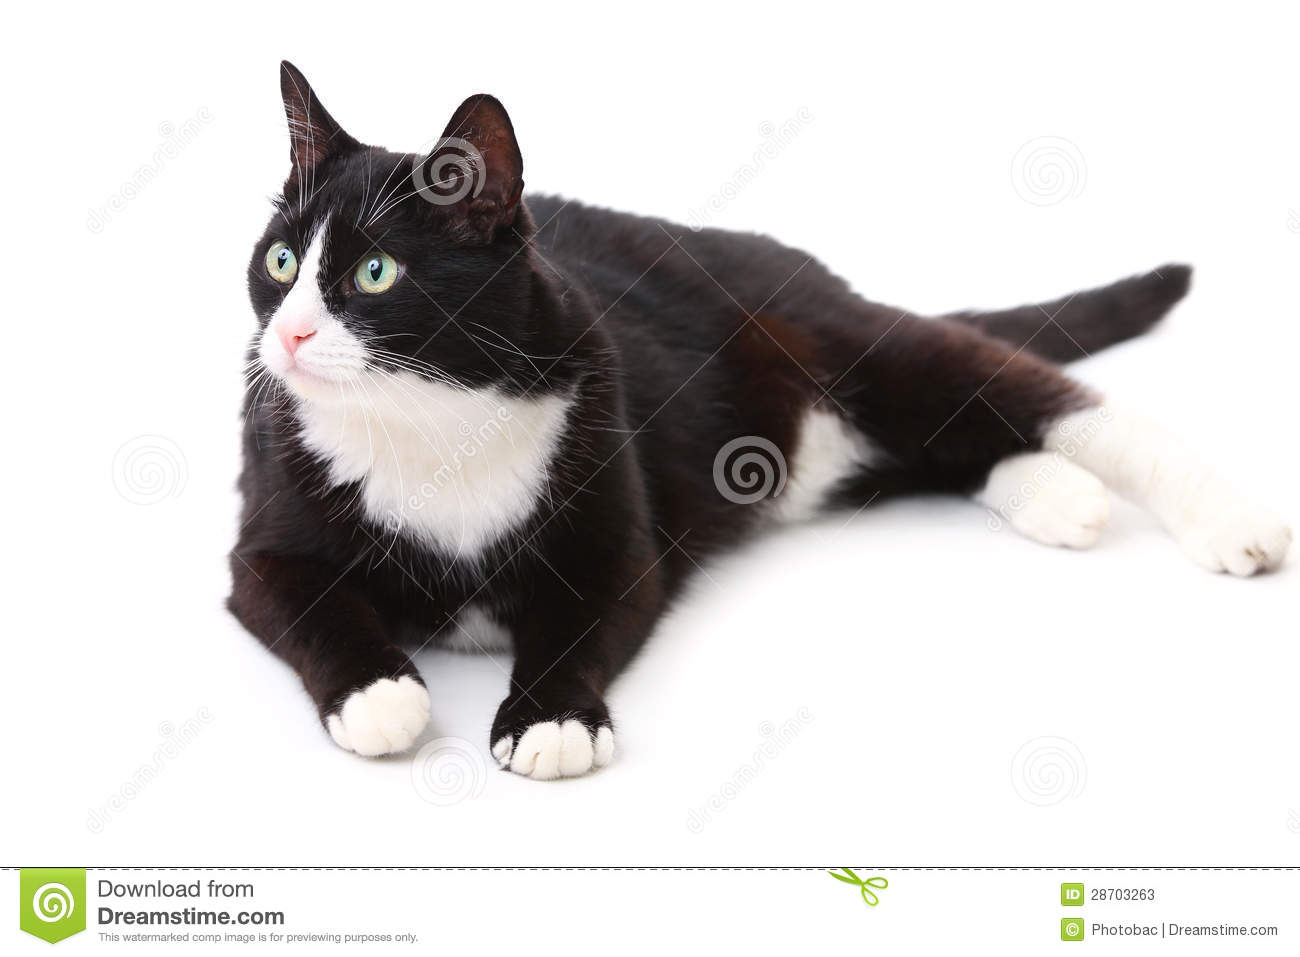 What To Name A Cat With White Paws